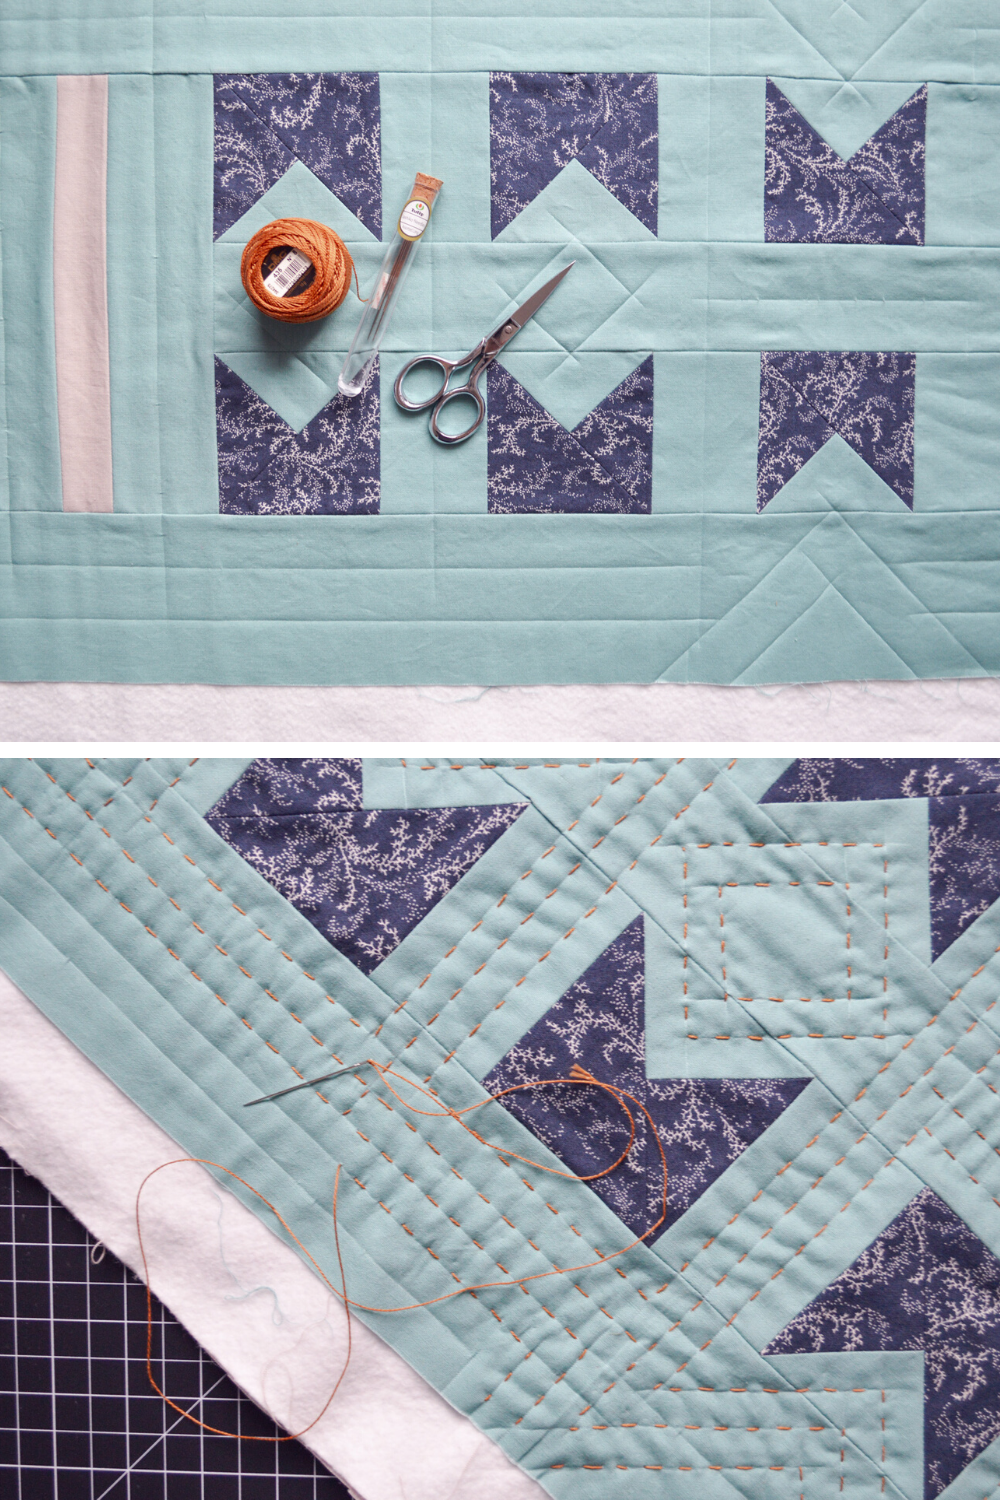 Hand quilted wall hanging | What's In Your Sewing Bag? Special Guest: Anna from Wax and Wane Studio | Shannon Fraser Designs #handquilting